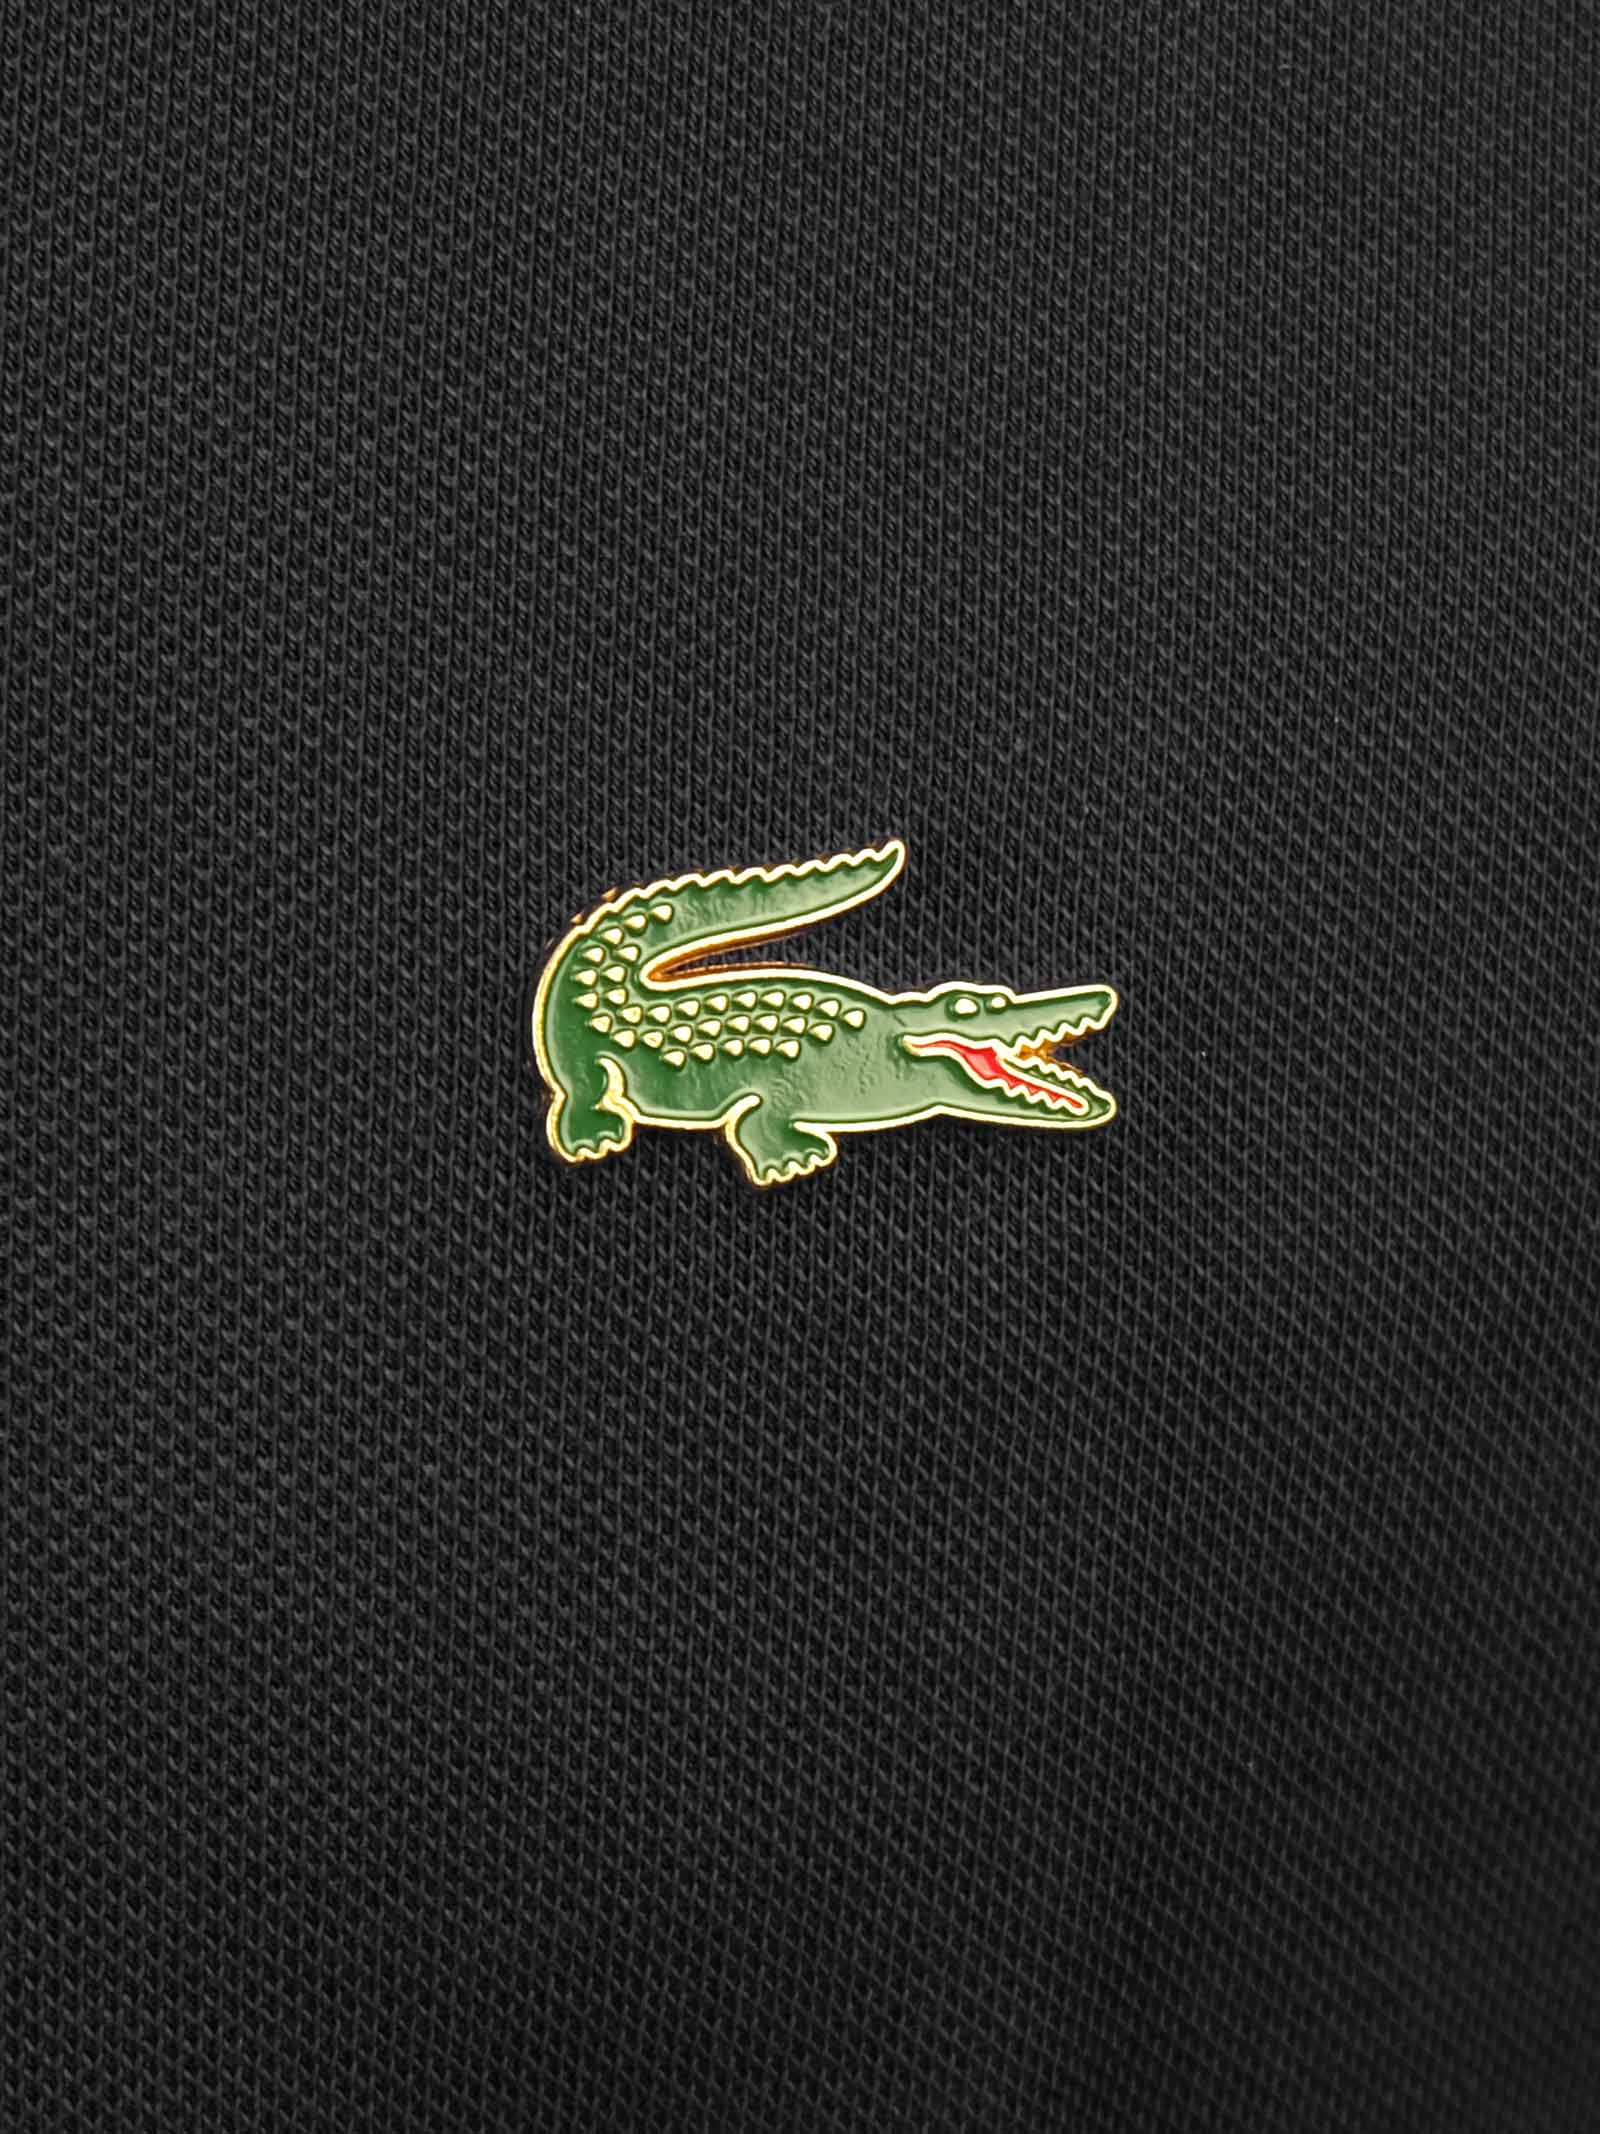 Unisex poloLimited edition LACOSTE | Polos | PH9161031